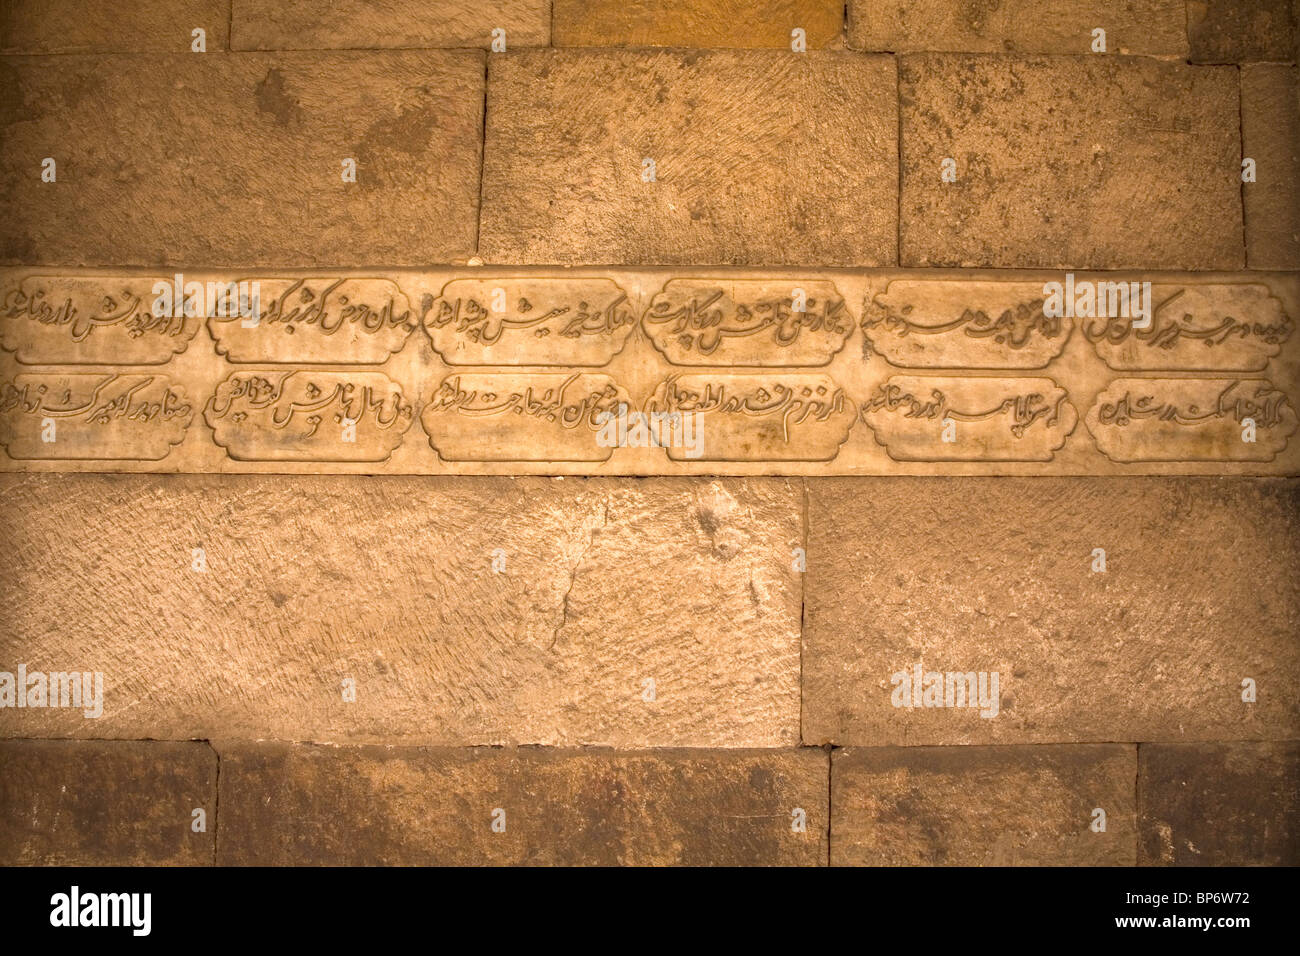 Arabic inscriptions at the Jamma Masjid (Friday Mosque) in Ahmedabad, Gujarat, India. - Stock Image